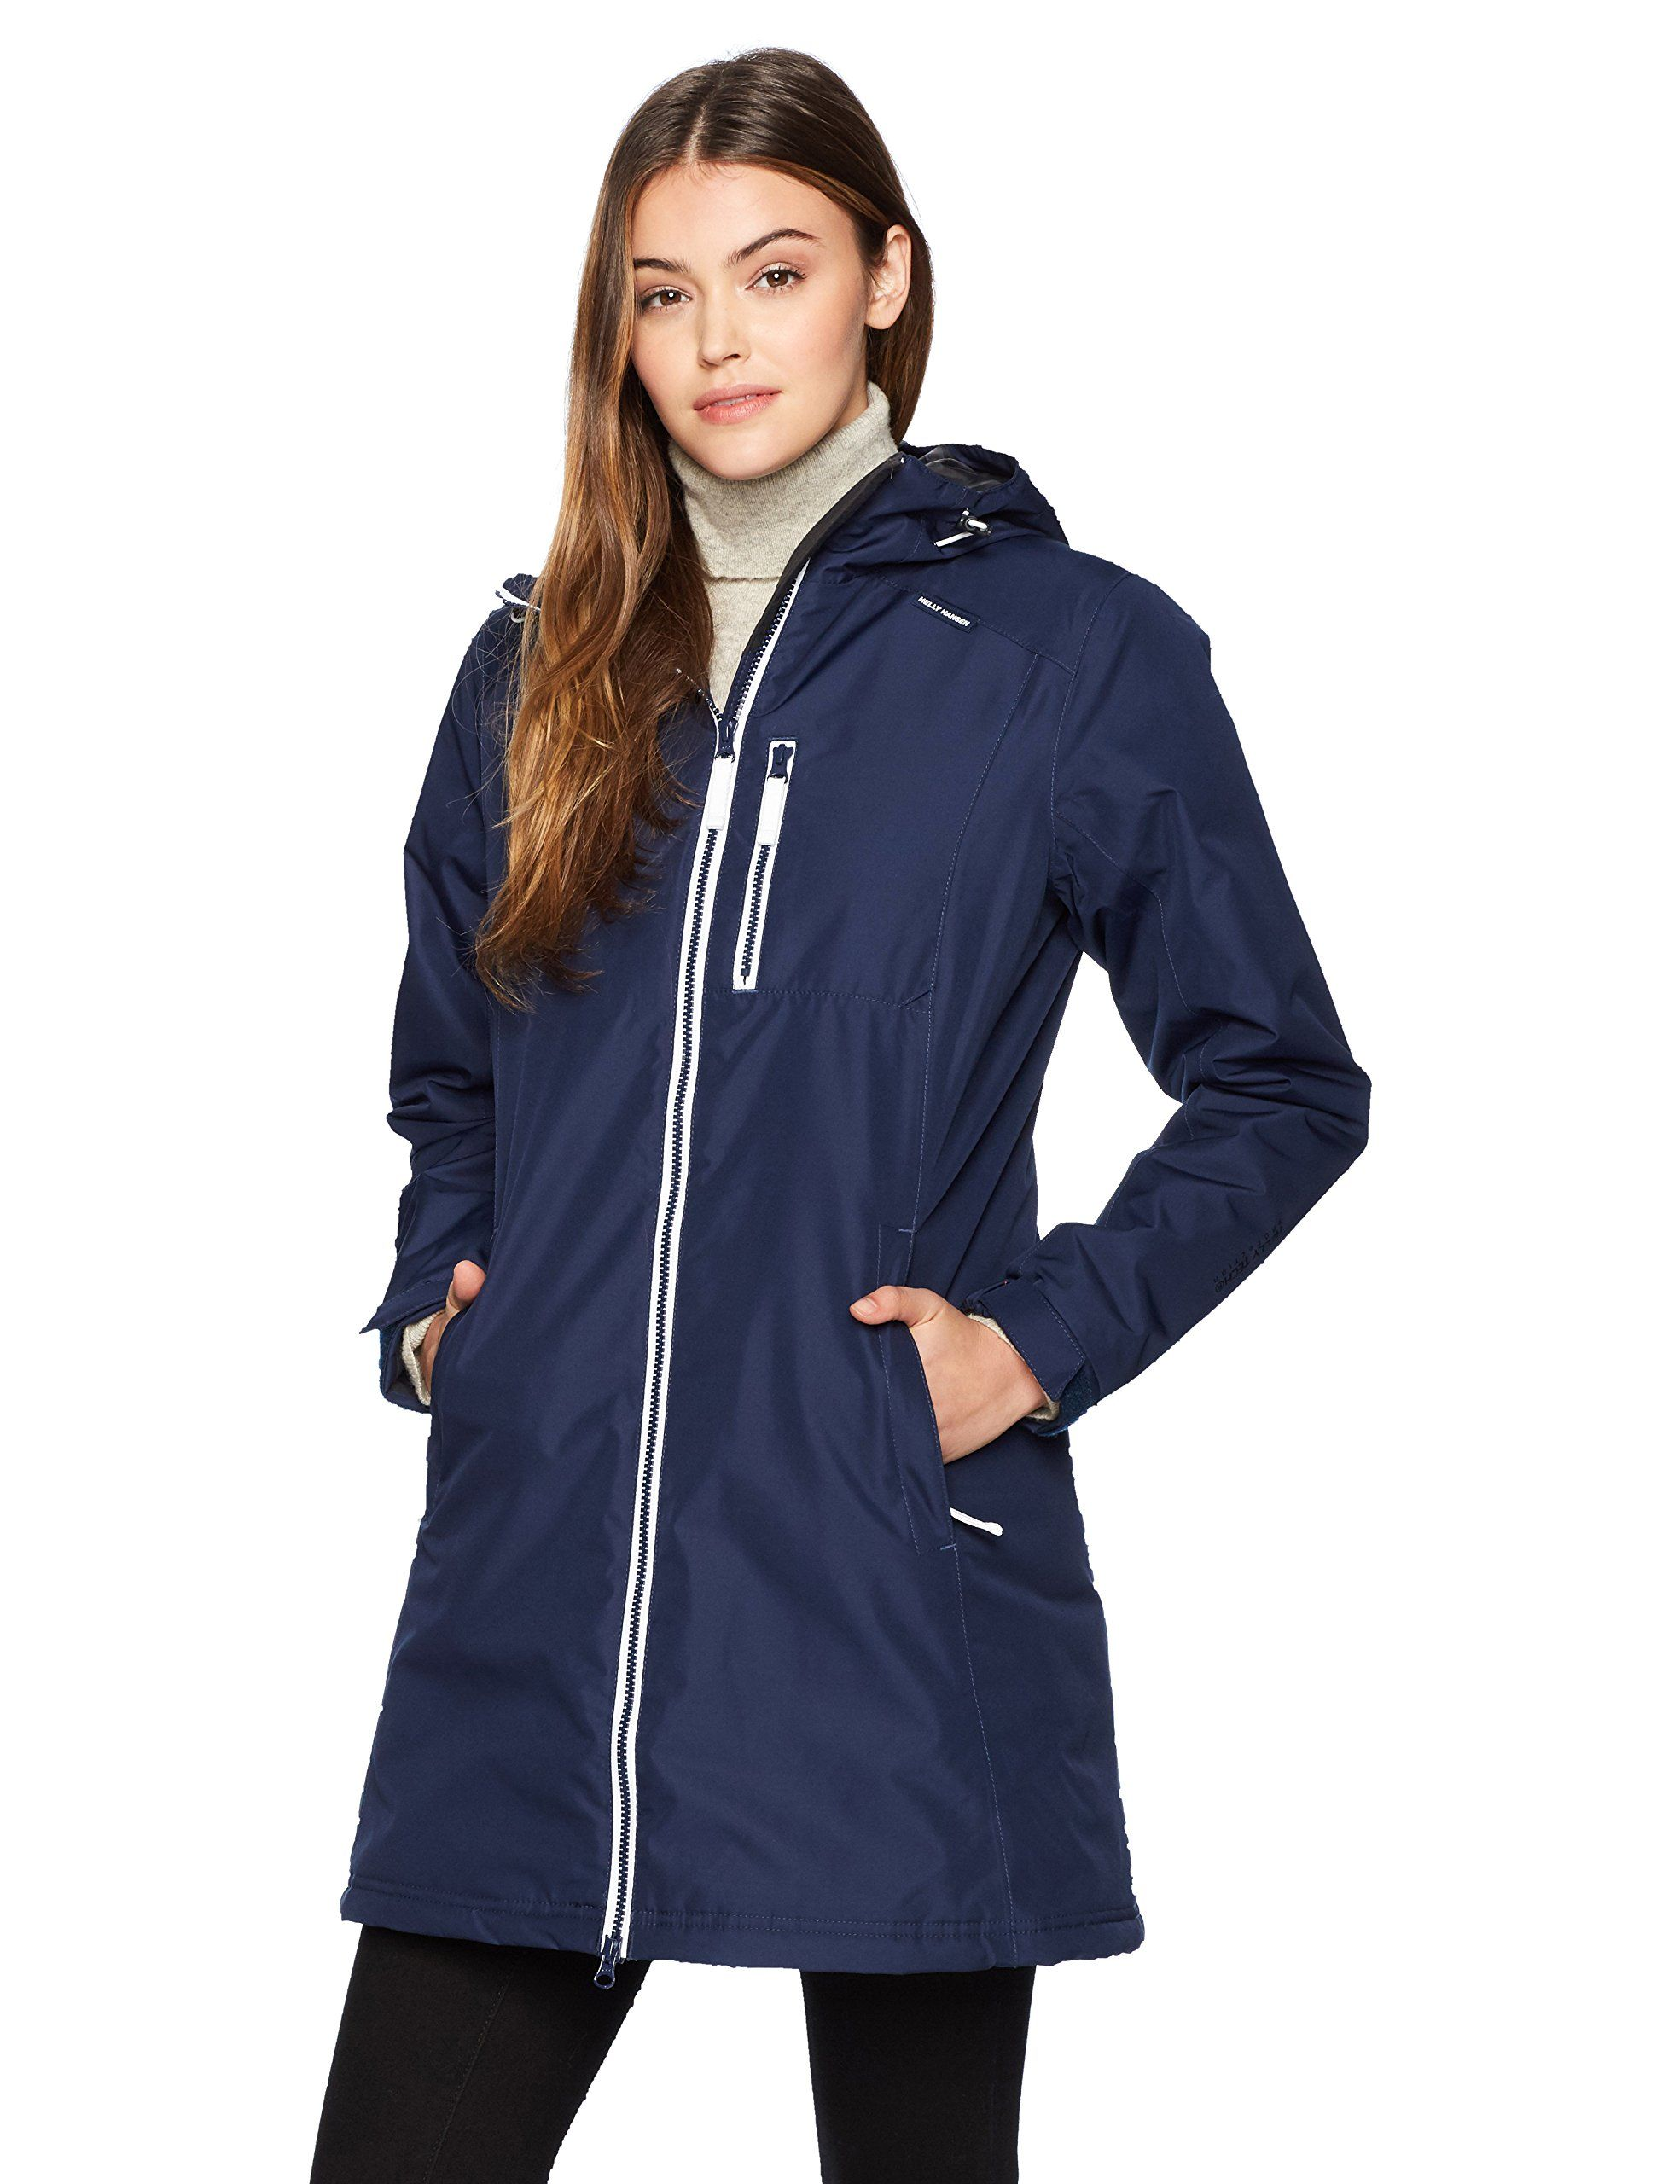 69a8ae53ae Helly Hansen Women's Long Belfast Winter Jacket, Evening Blue, Small. Helly  tech protection